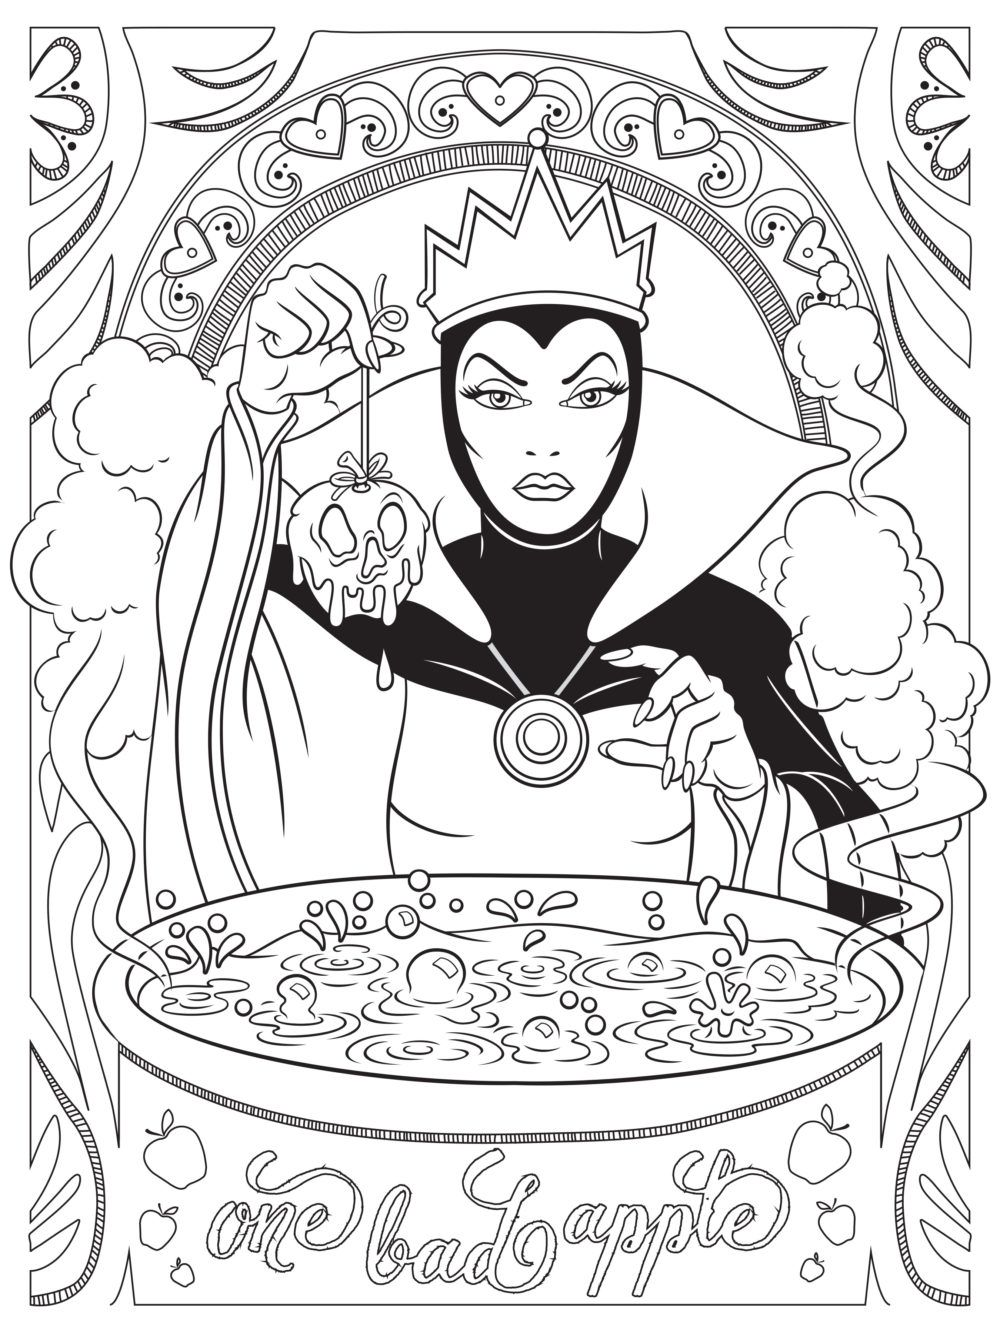 celebrate national coloring book day with disney style evil